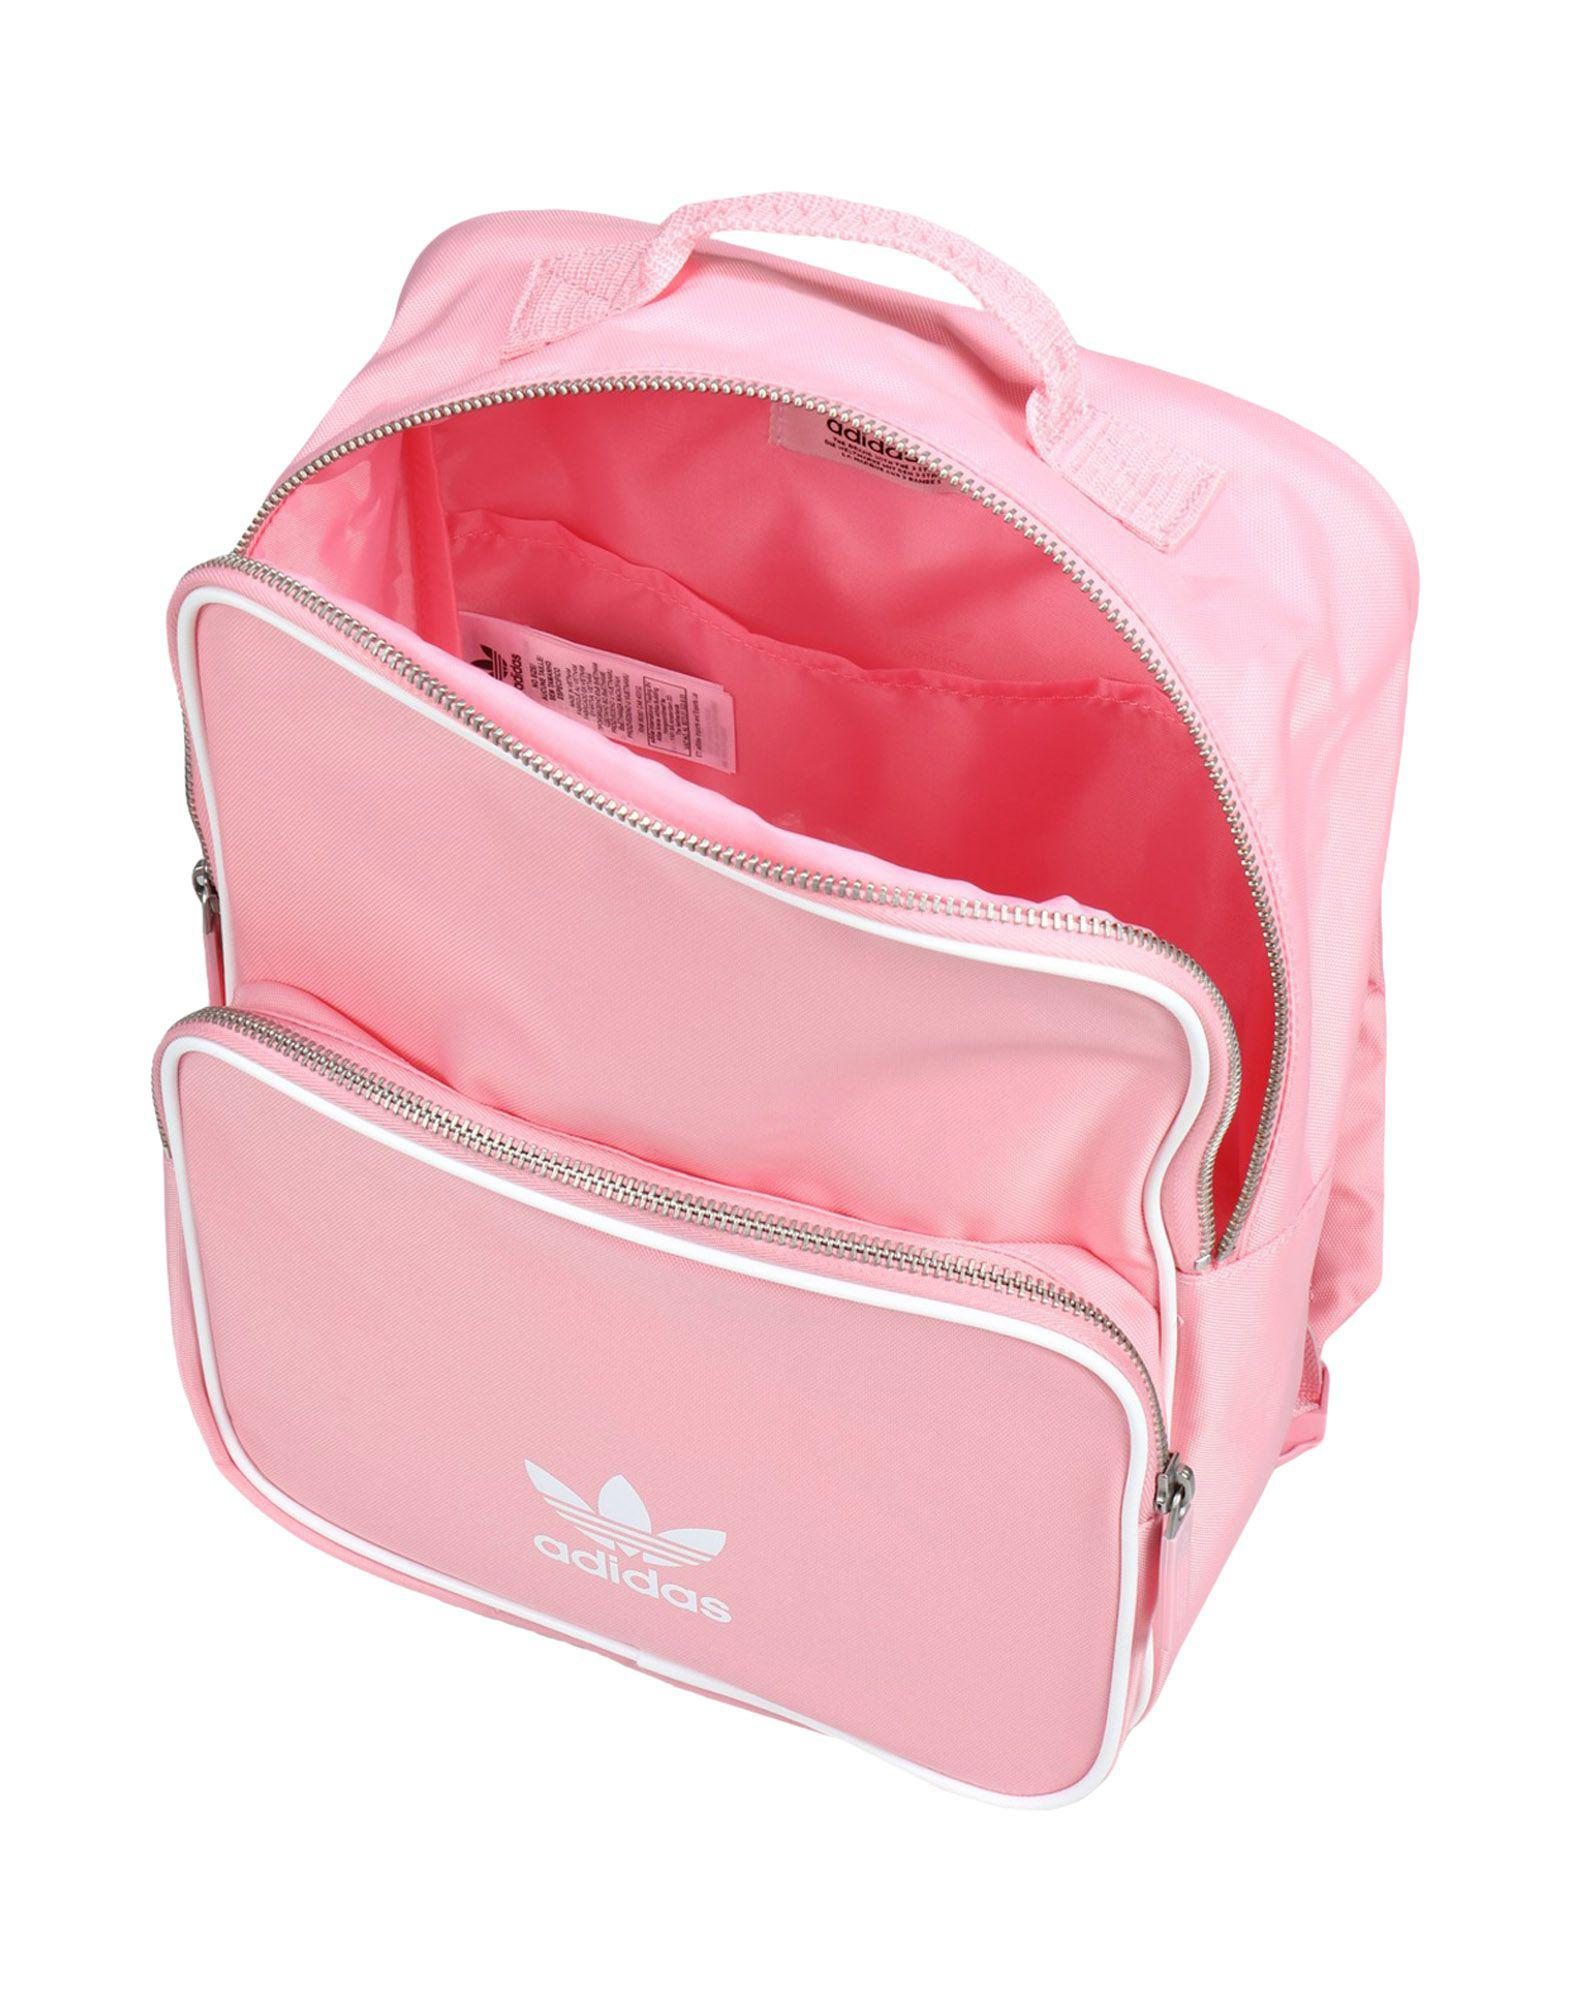 7e3b0f0e80 adidas Originals Backpacks   Bum Bags in Pink - Lyst